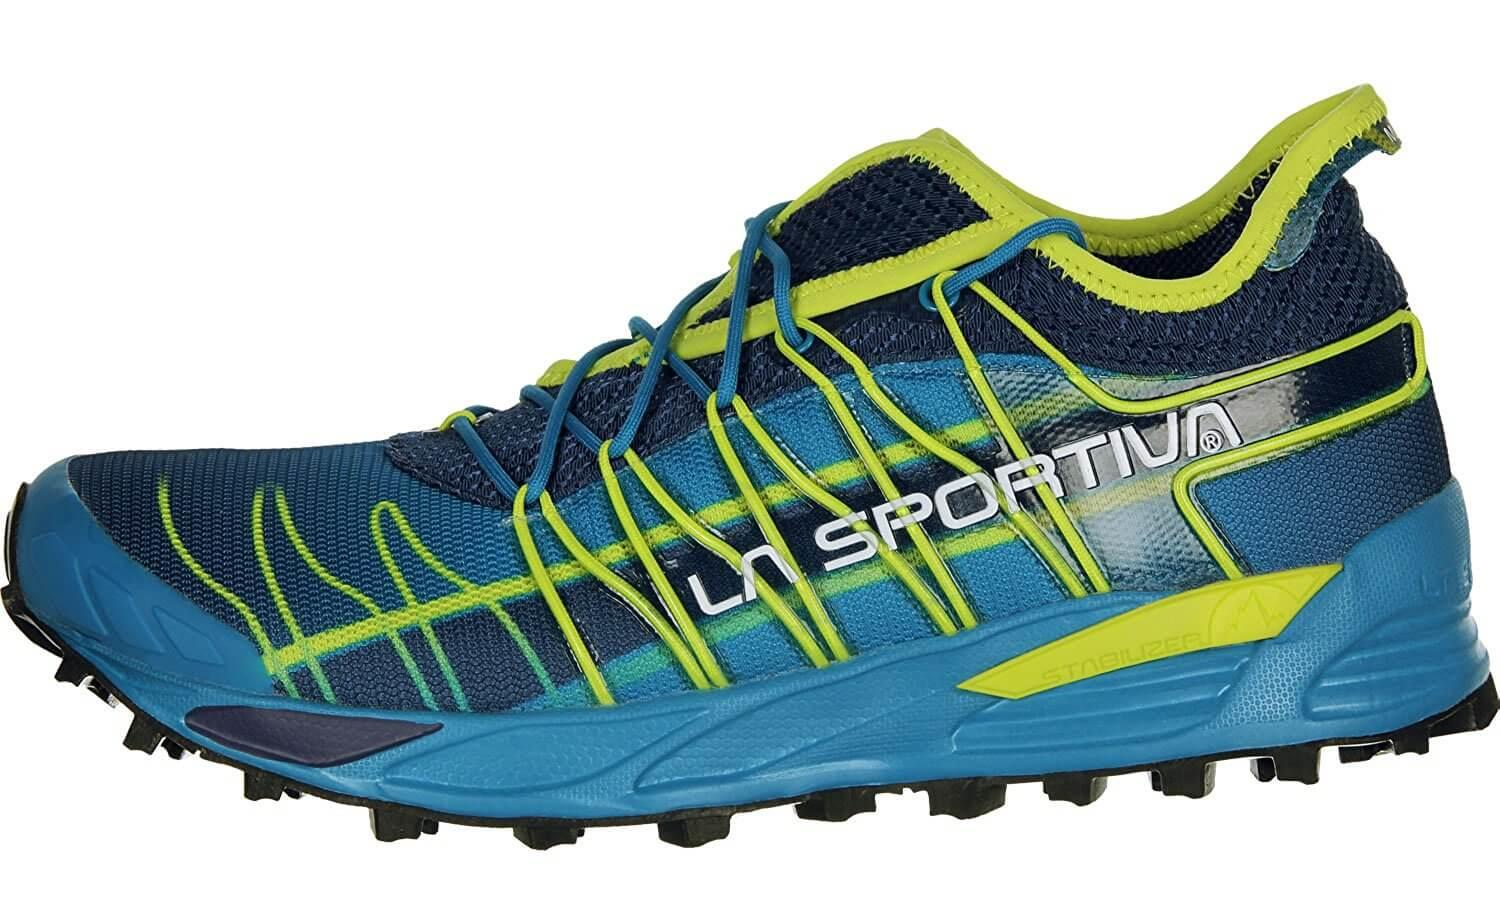 the La Sportiva Mutant has a sleek design that's highly responsive and flexible